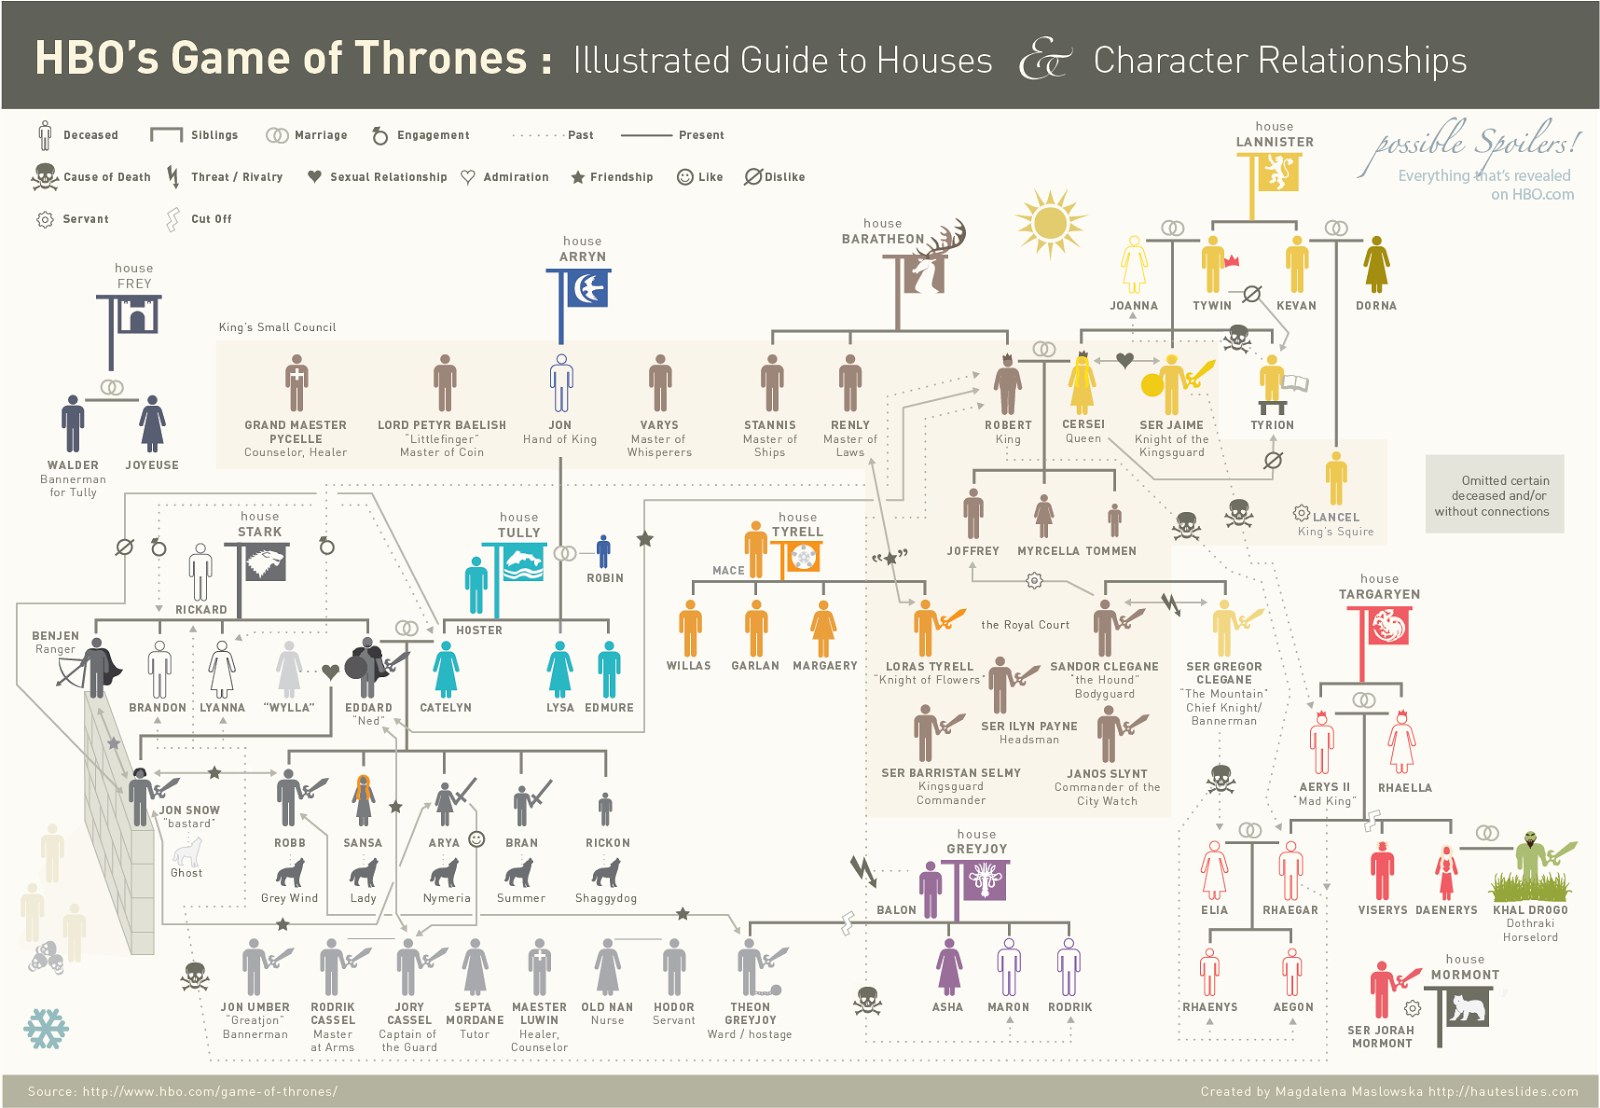 http://hauteslides.com/2011/05/game-of-thrones-infographic-illustrated-guide-to-houses-and-character-relationships/